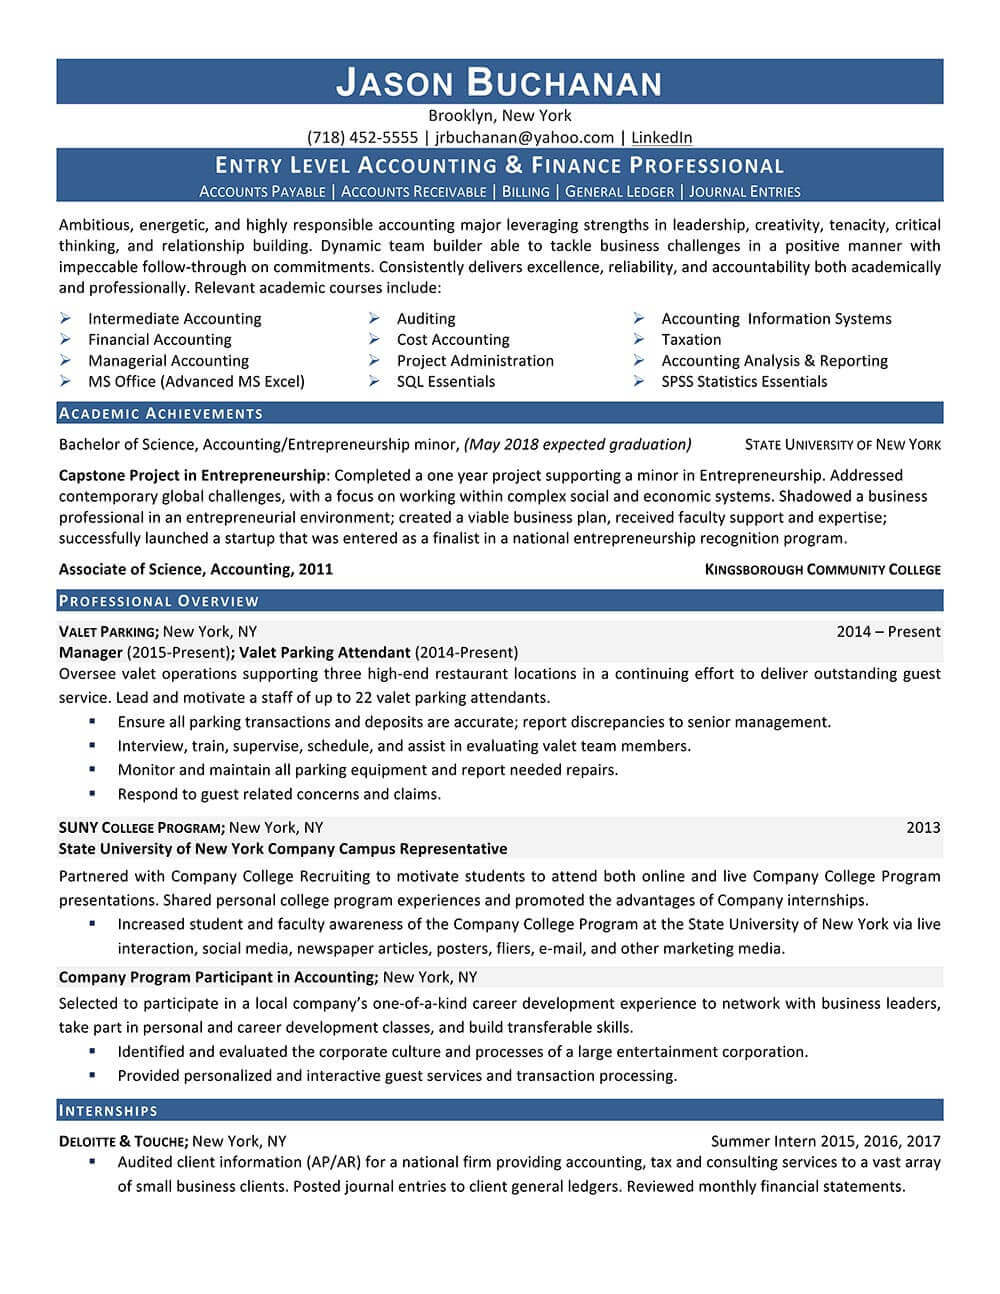 monster resume writing service review top builders free another word for communication Resume Monster Free Resume Review